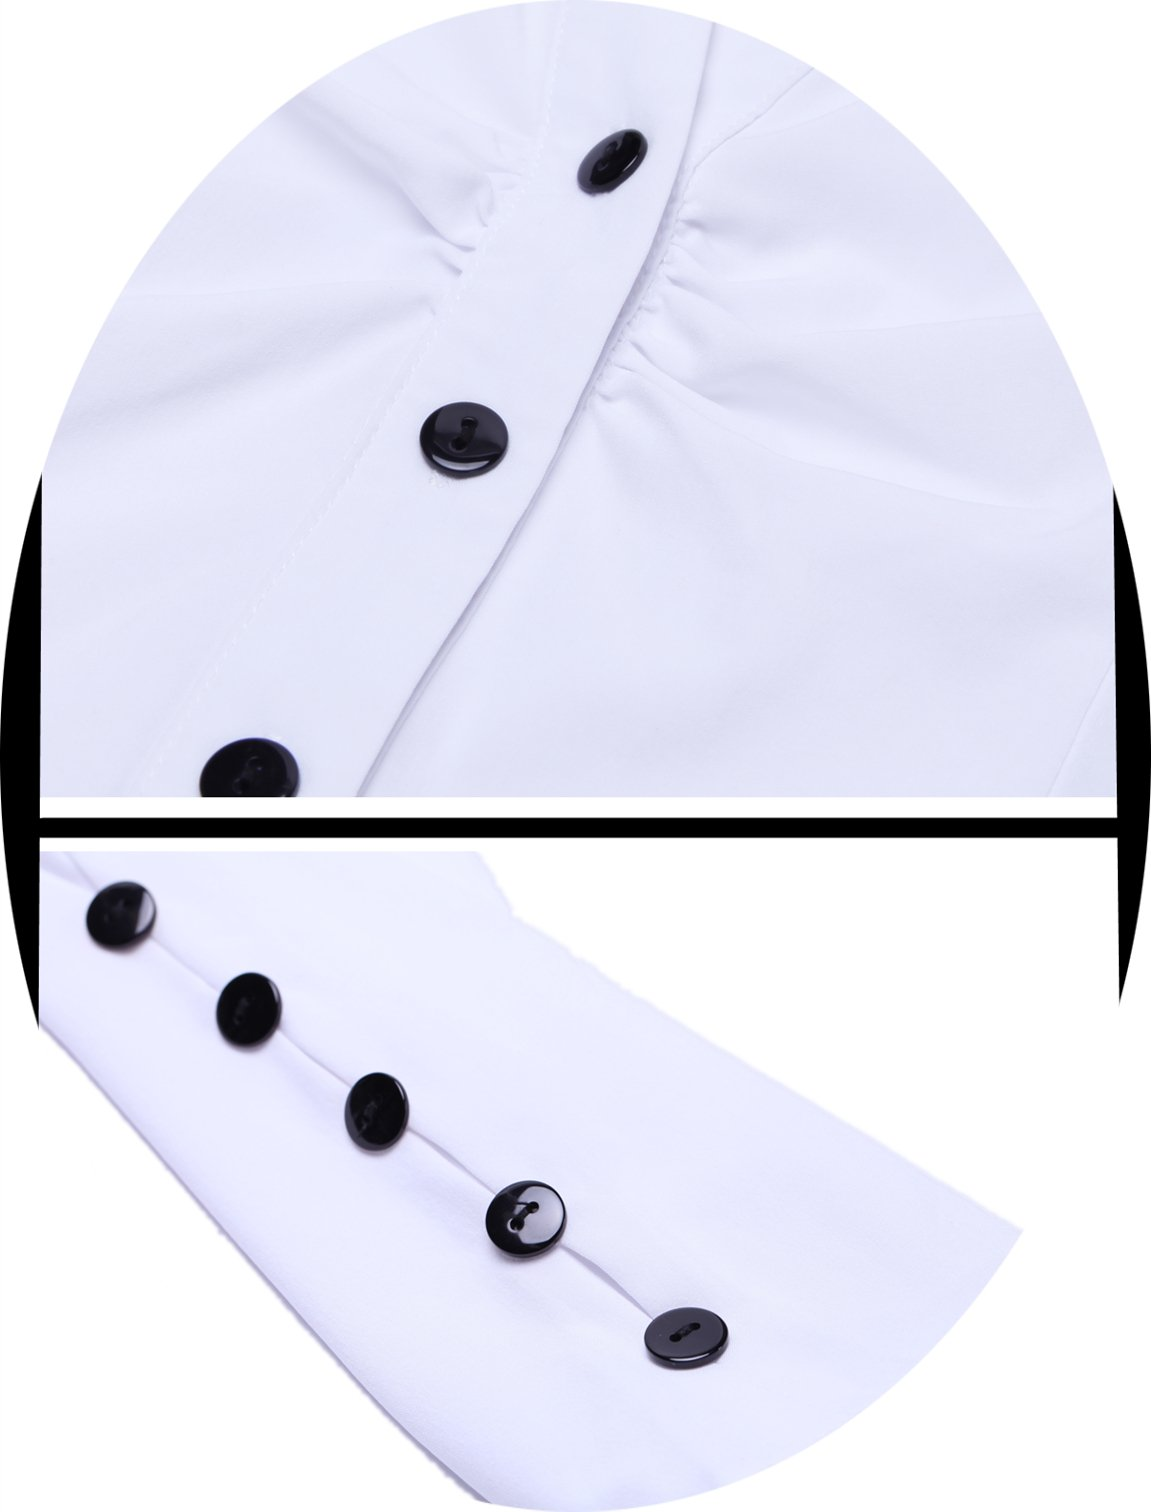 MISS MOLY Women's White Button Down Shirt V Neck Collar Puff Sleeve Office M by MISS MOLY (Image #7)